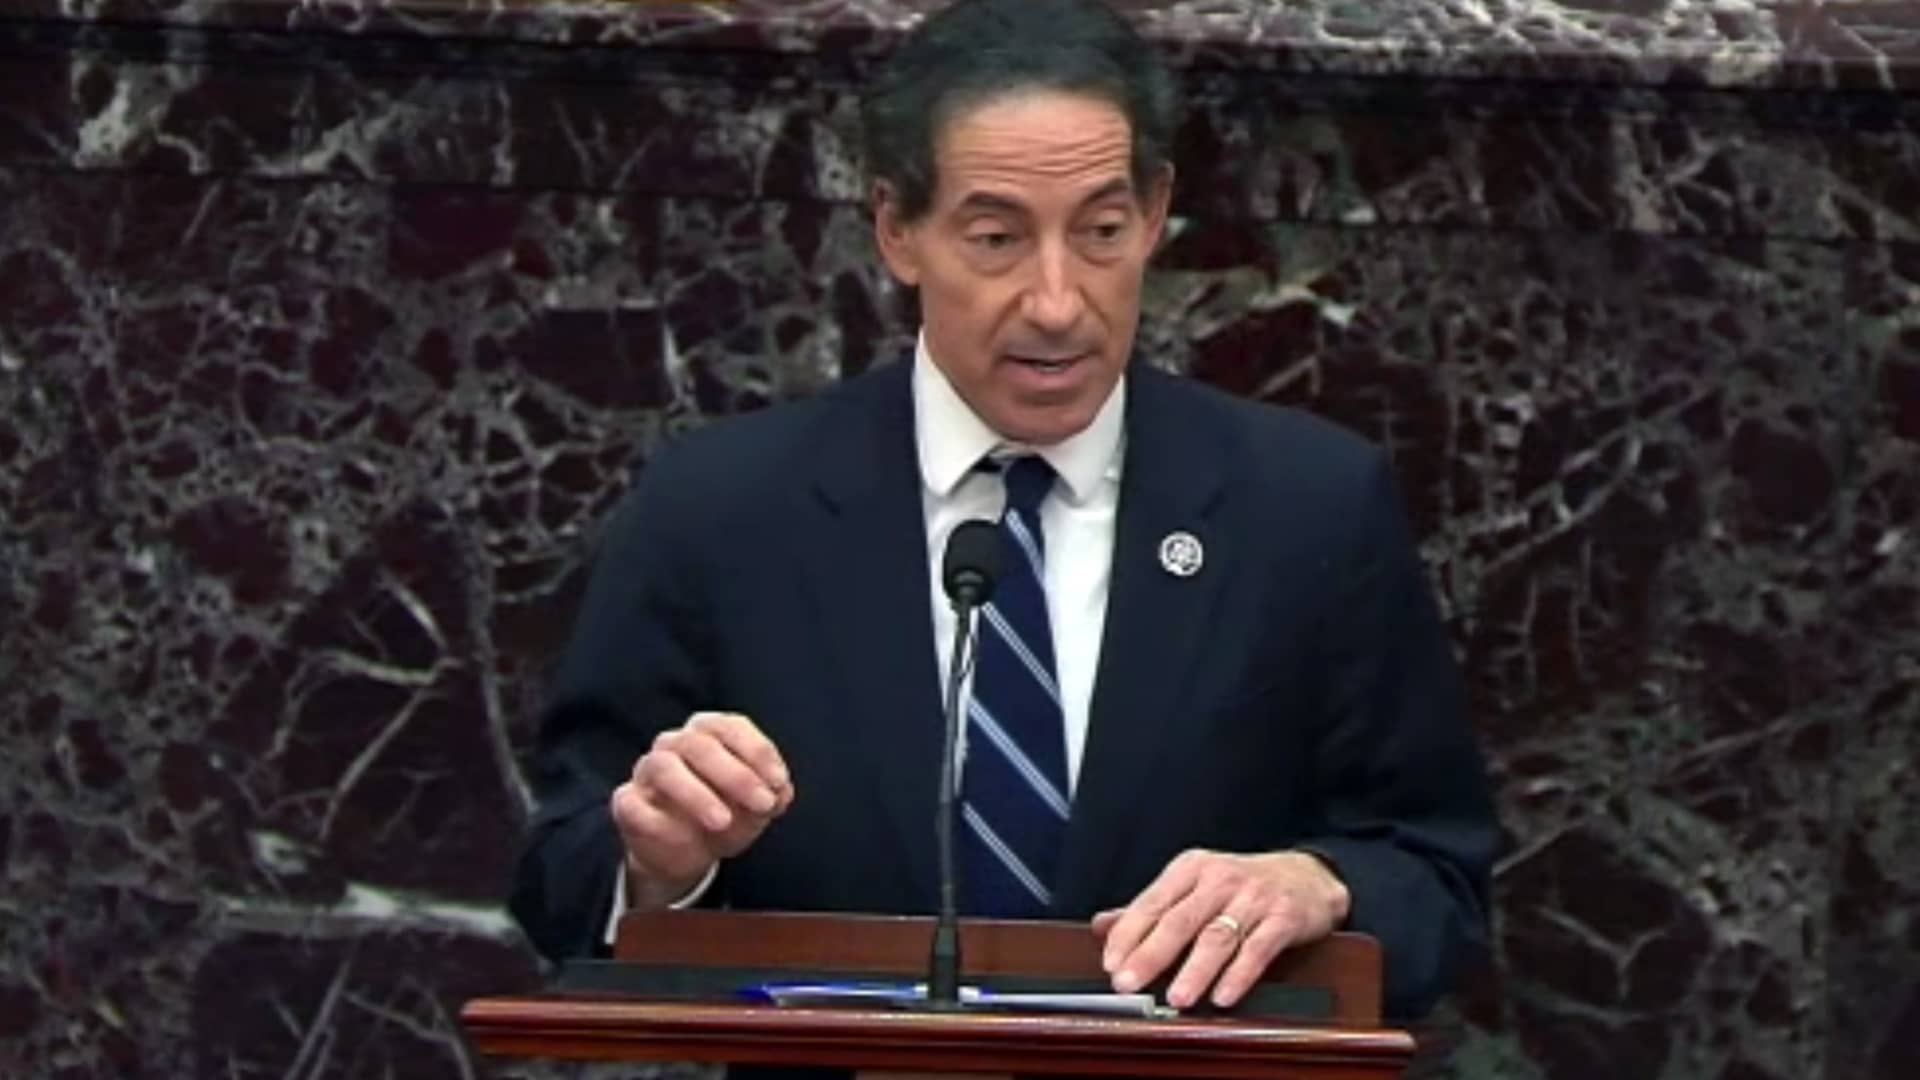 In this screenshot taken from a congress.gov webcast, lead House impeachment manager Rep. Jamie Raskin (D-MD) speaks on the fifth day of former President Donald Trump's second impeachment trial at the U.S. Capitol on February 13, 2021 in Washington, DC.